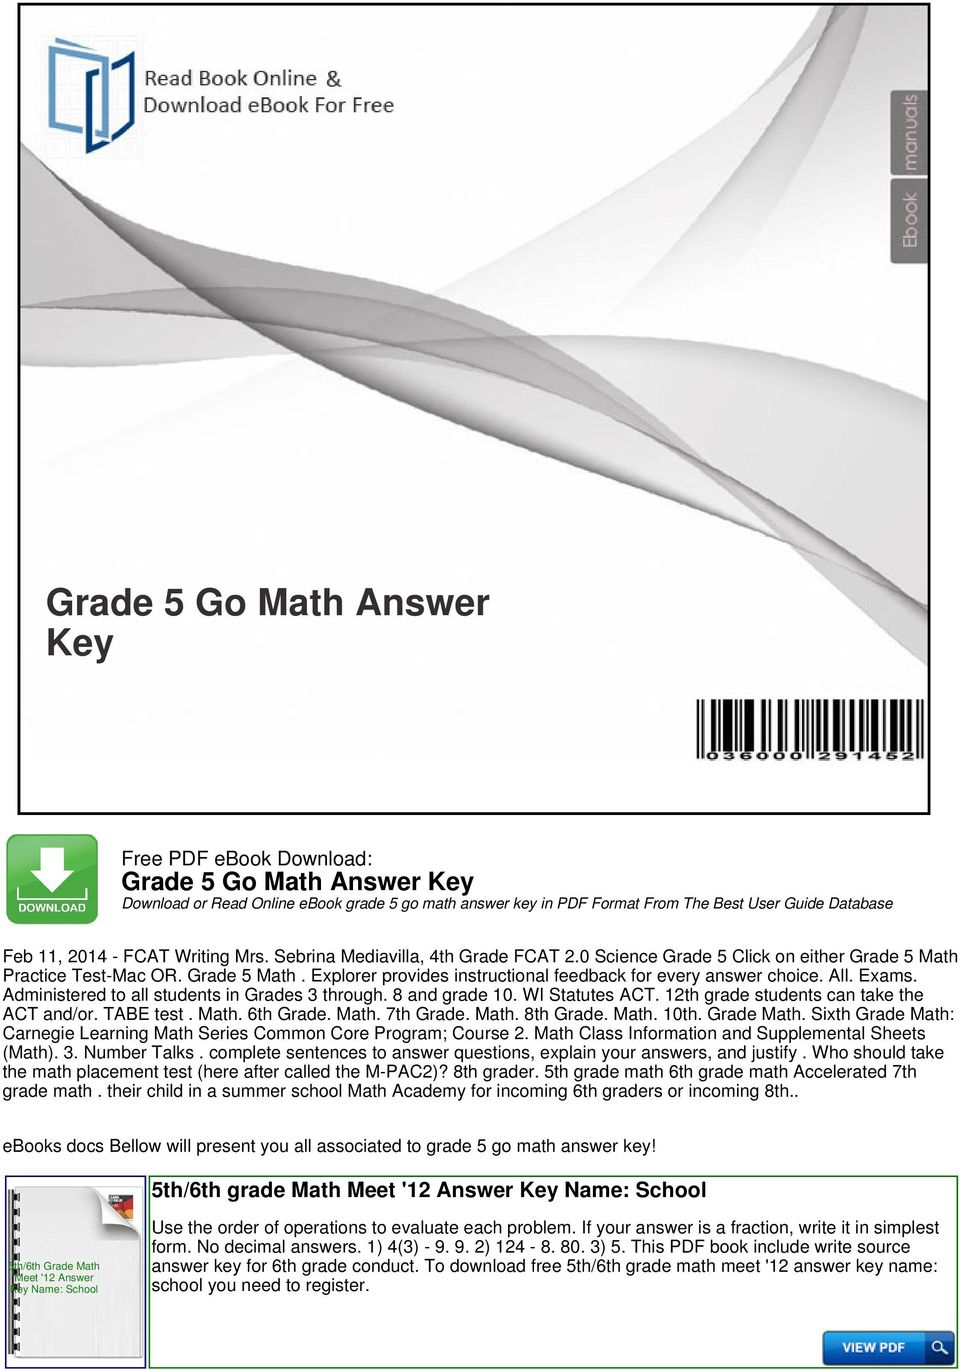 Grade 5 go math answer key pdf all exams administered to all students in grades 3 through 8 and grade fandeluxe Choice Image